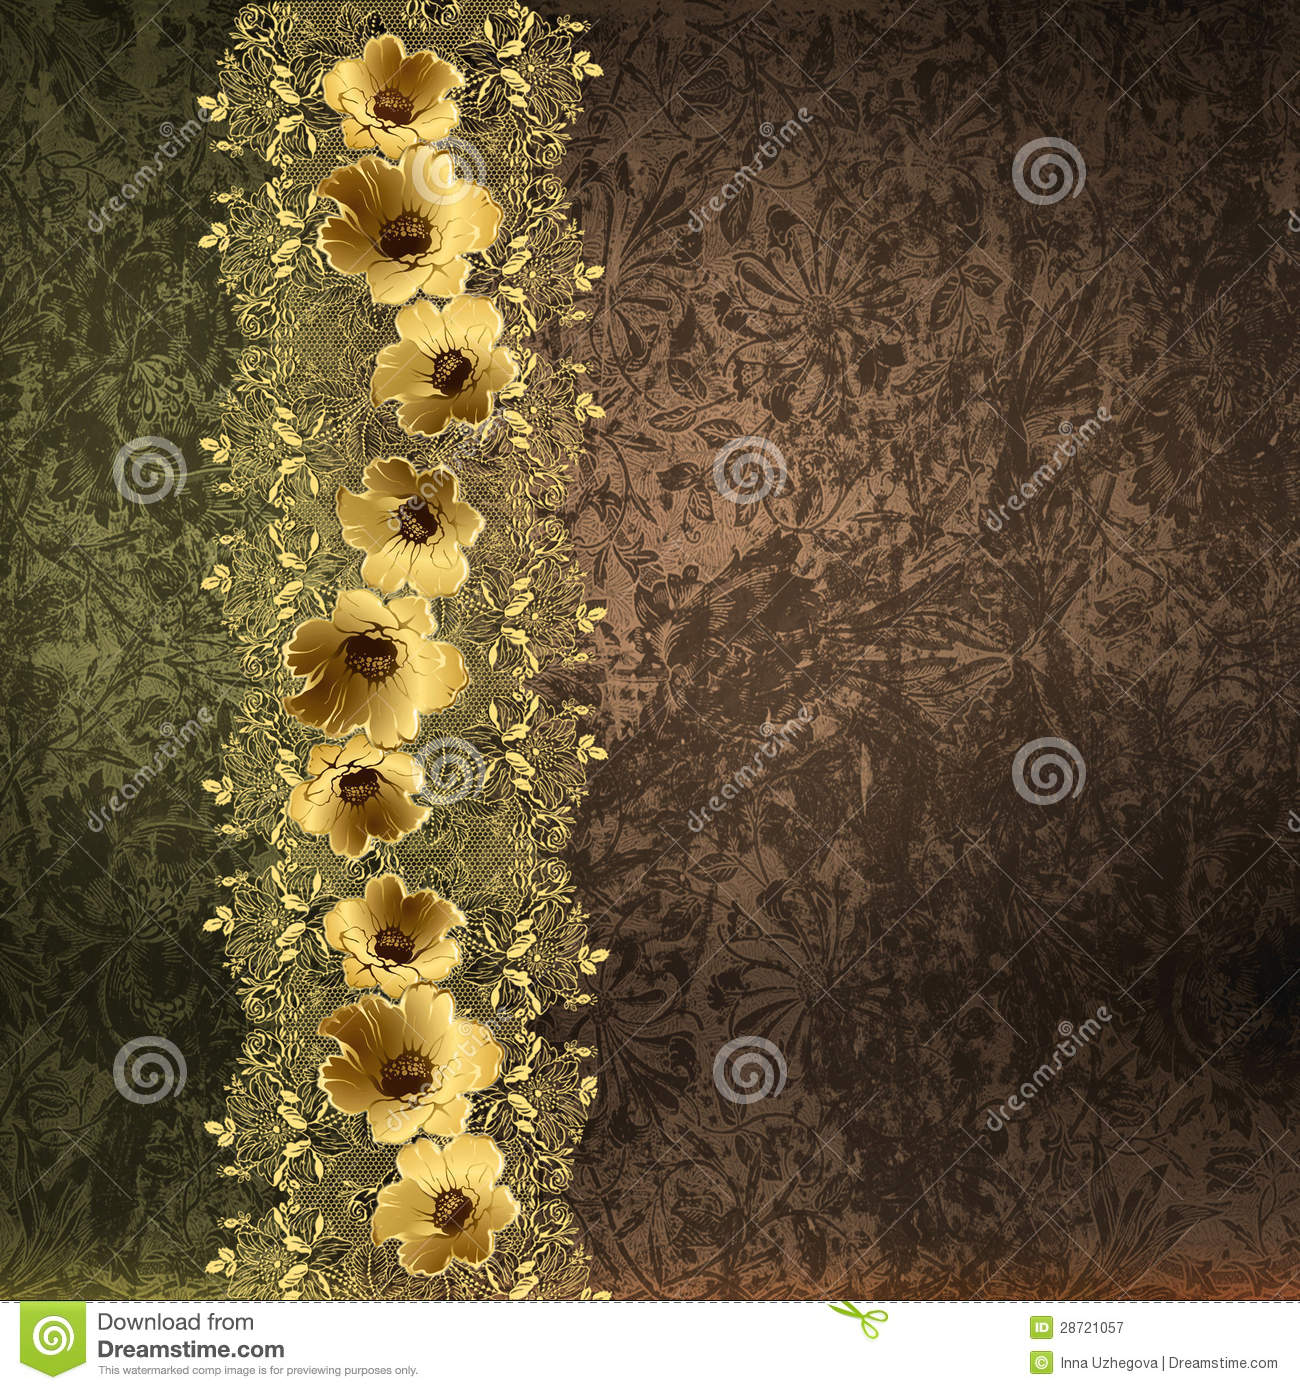 grunge border and background royalty free stock photography image 2186207 gold floral border on a grunge background royalty free stock photography image 28721057